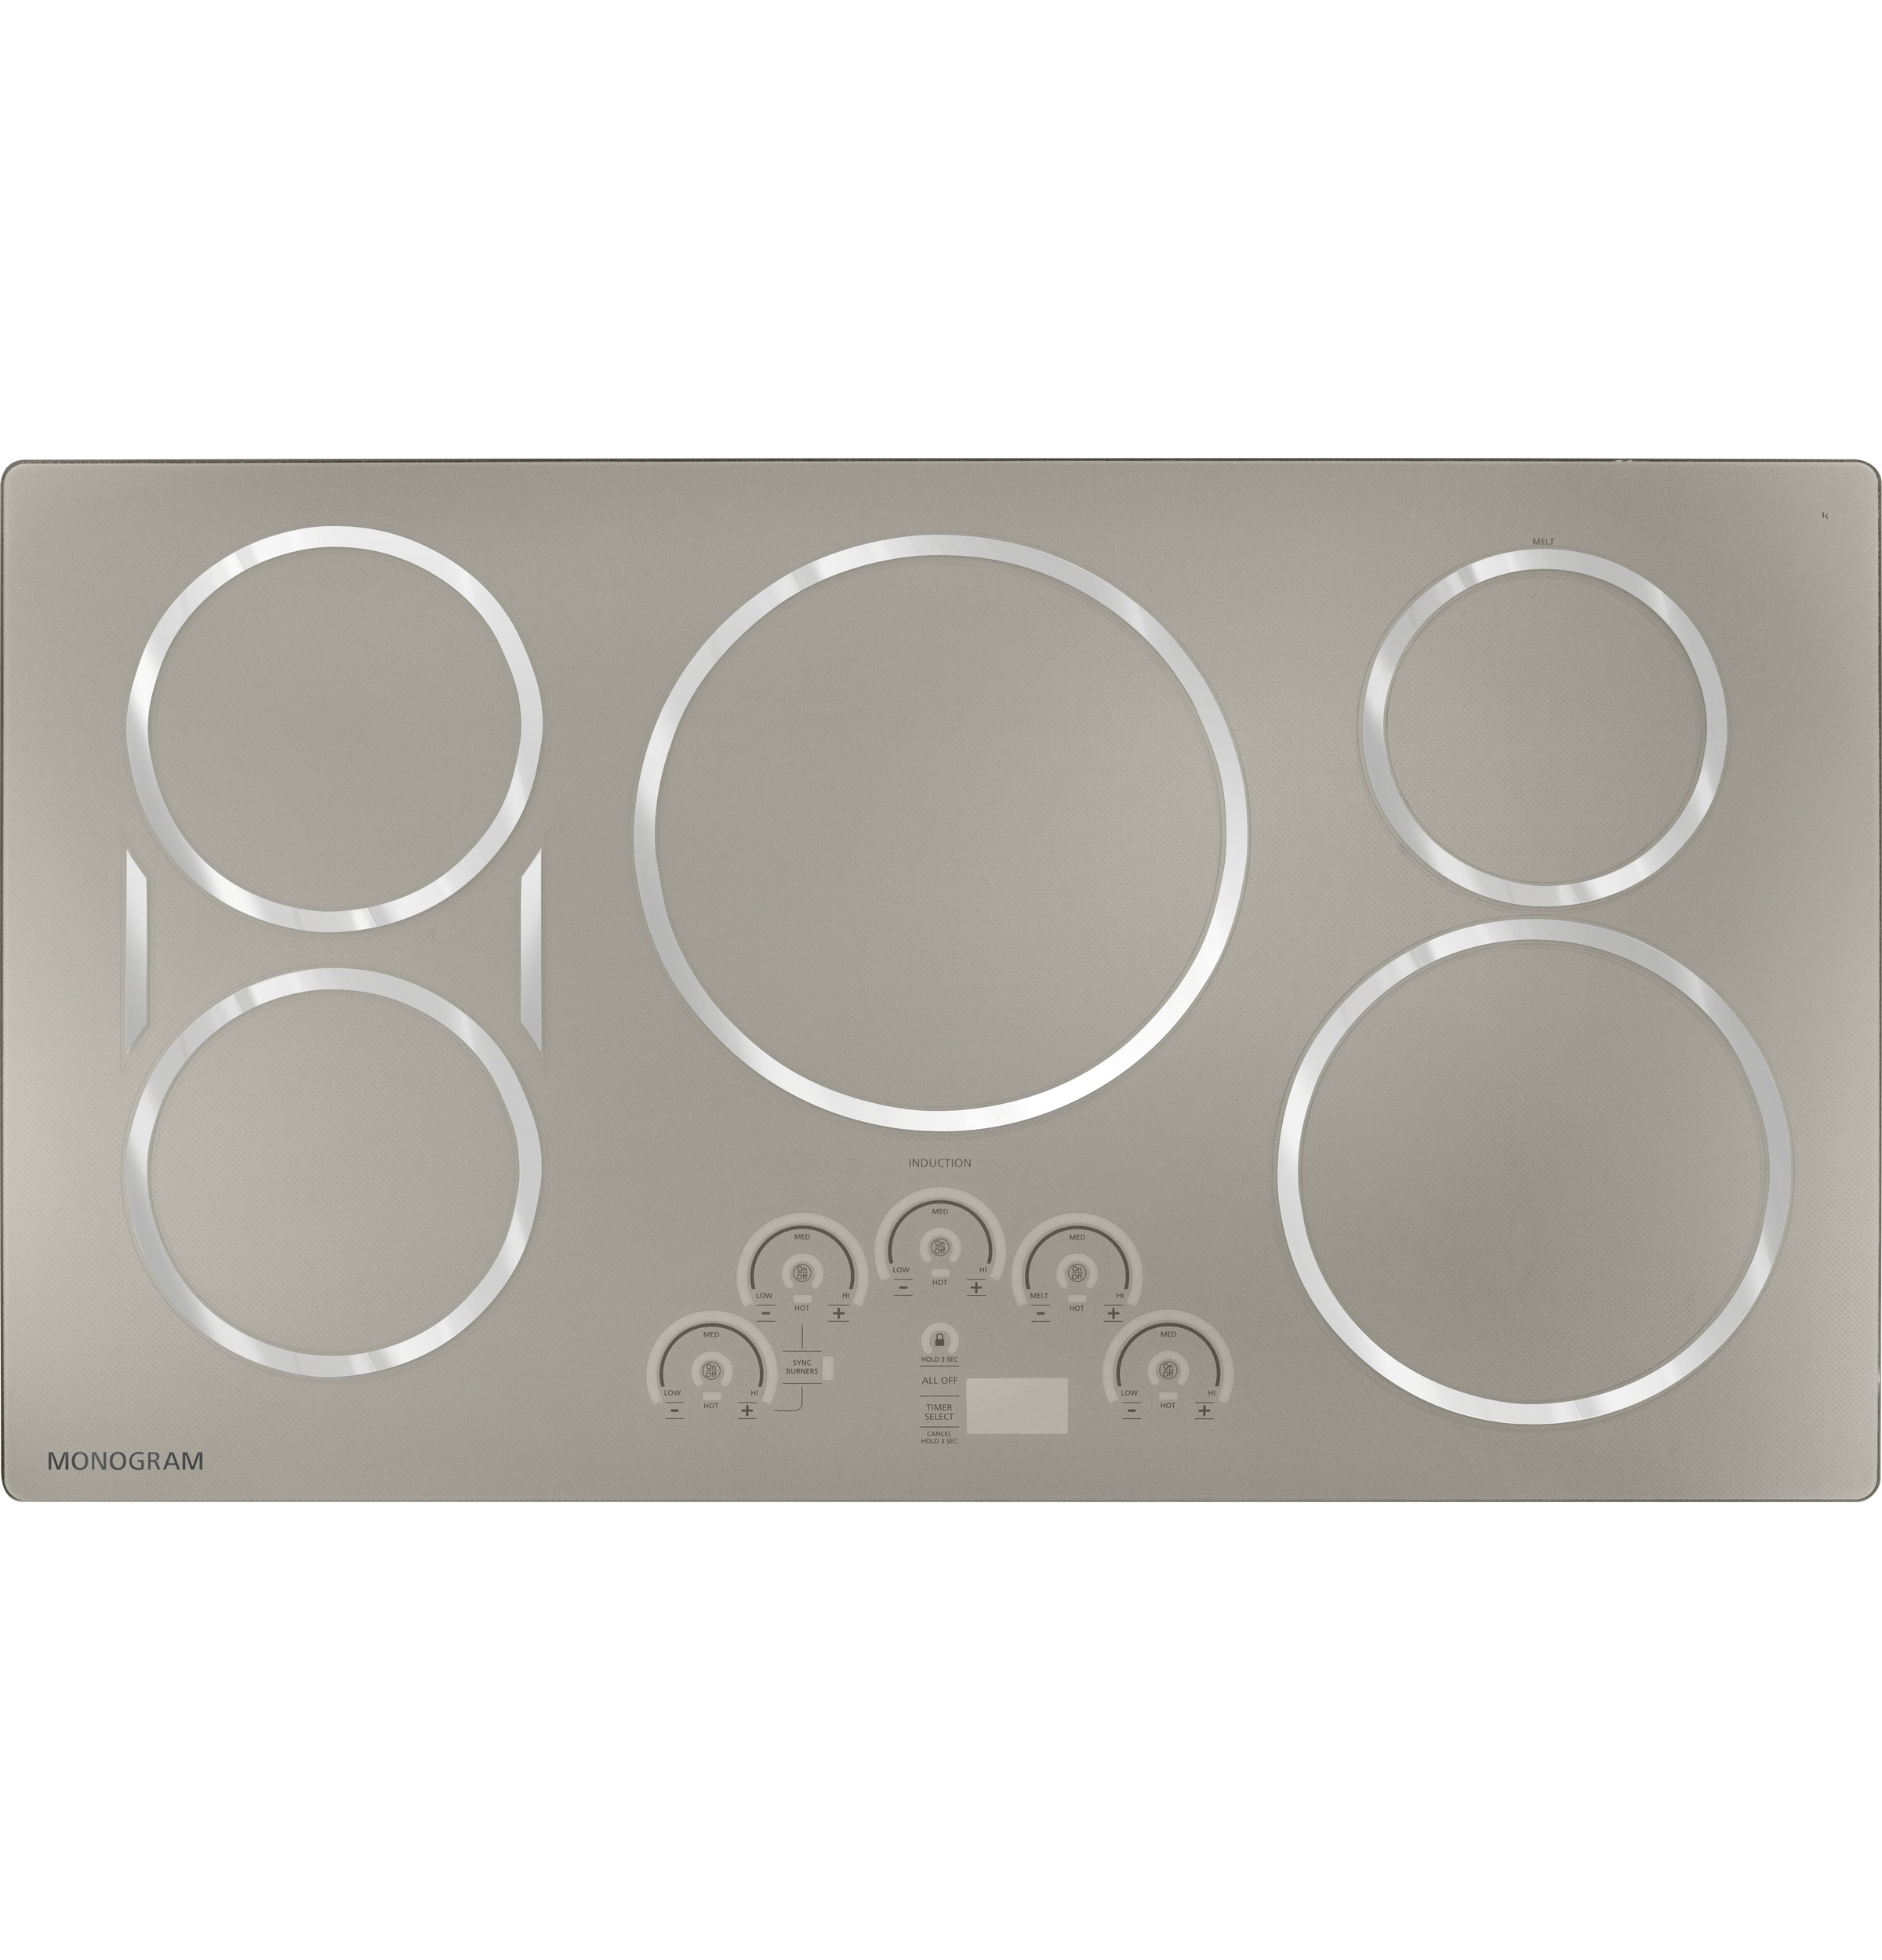 "Model: ZHU36RSJSS | Monogram Monogram 36"" Induction Cooktop"